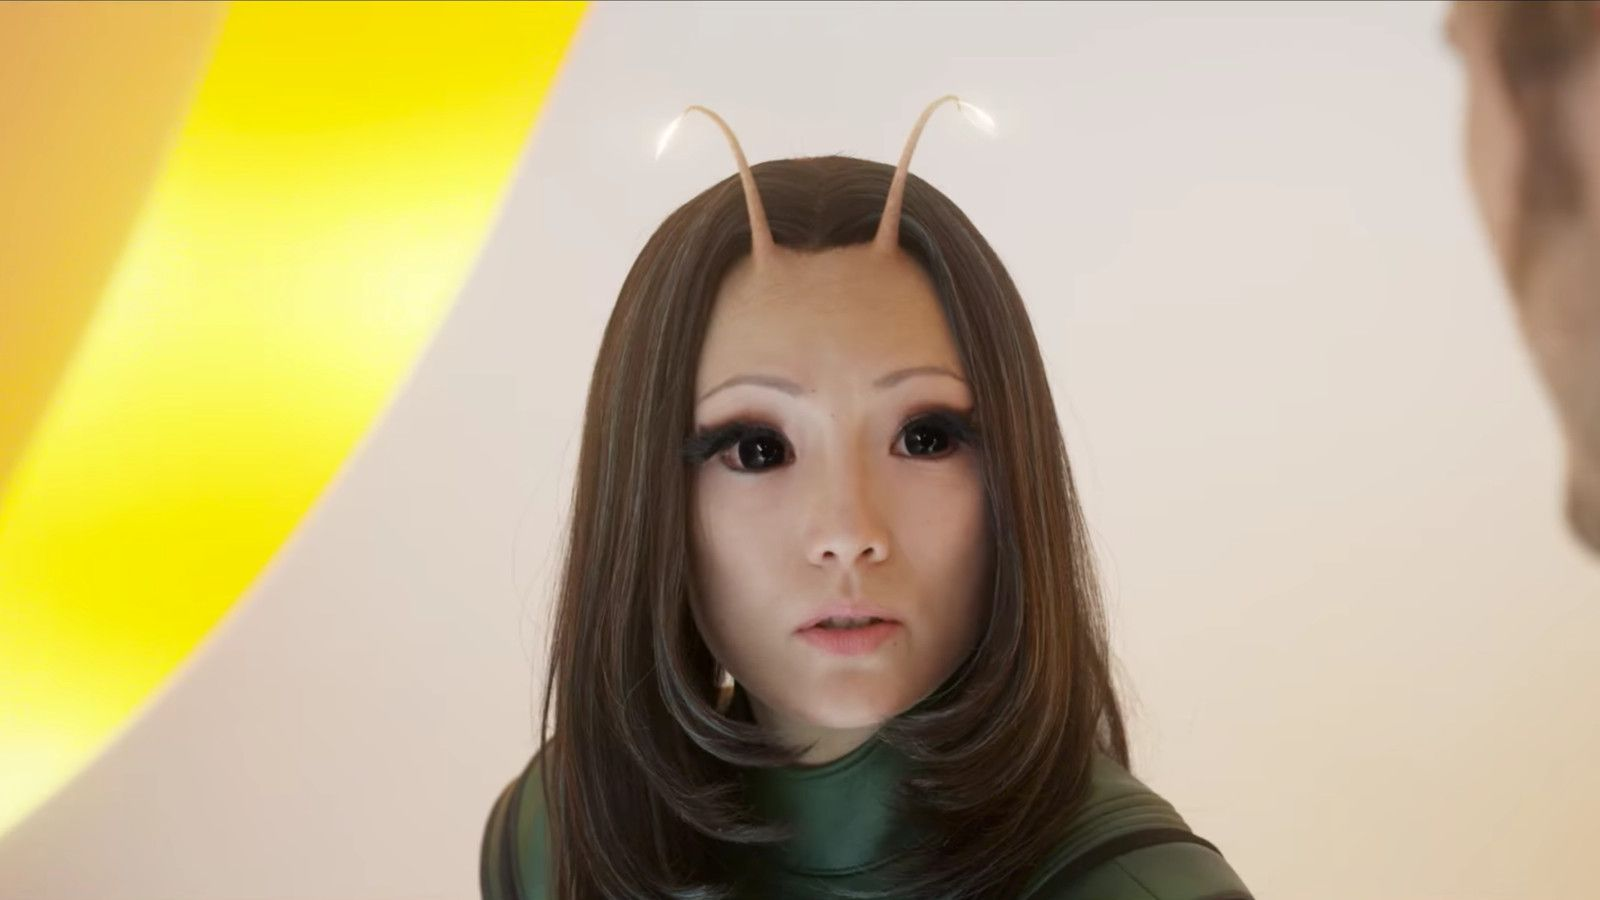 Guardians Of The Galaxy Vol 2 Got Mantis All Wrong Says Character Creator Polygon Guardians Of The Galaxy Mantis Marvel Guardians Of The Galaxy Vol 2